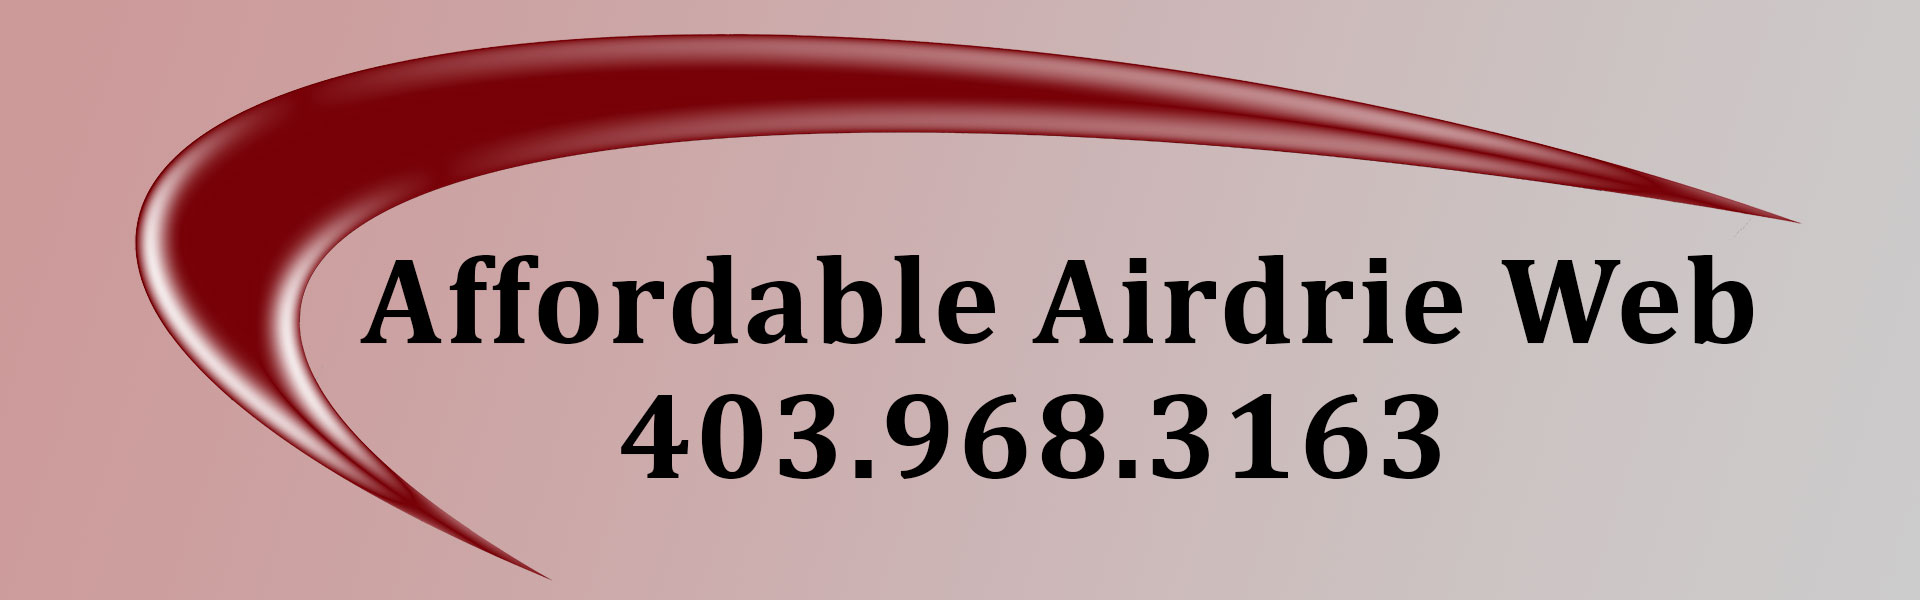 Contact Affordable Airdrie Web, a custom web design and development firm serving Airdrie and the Calgary region